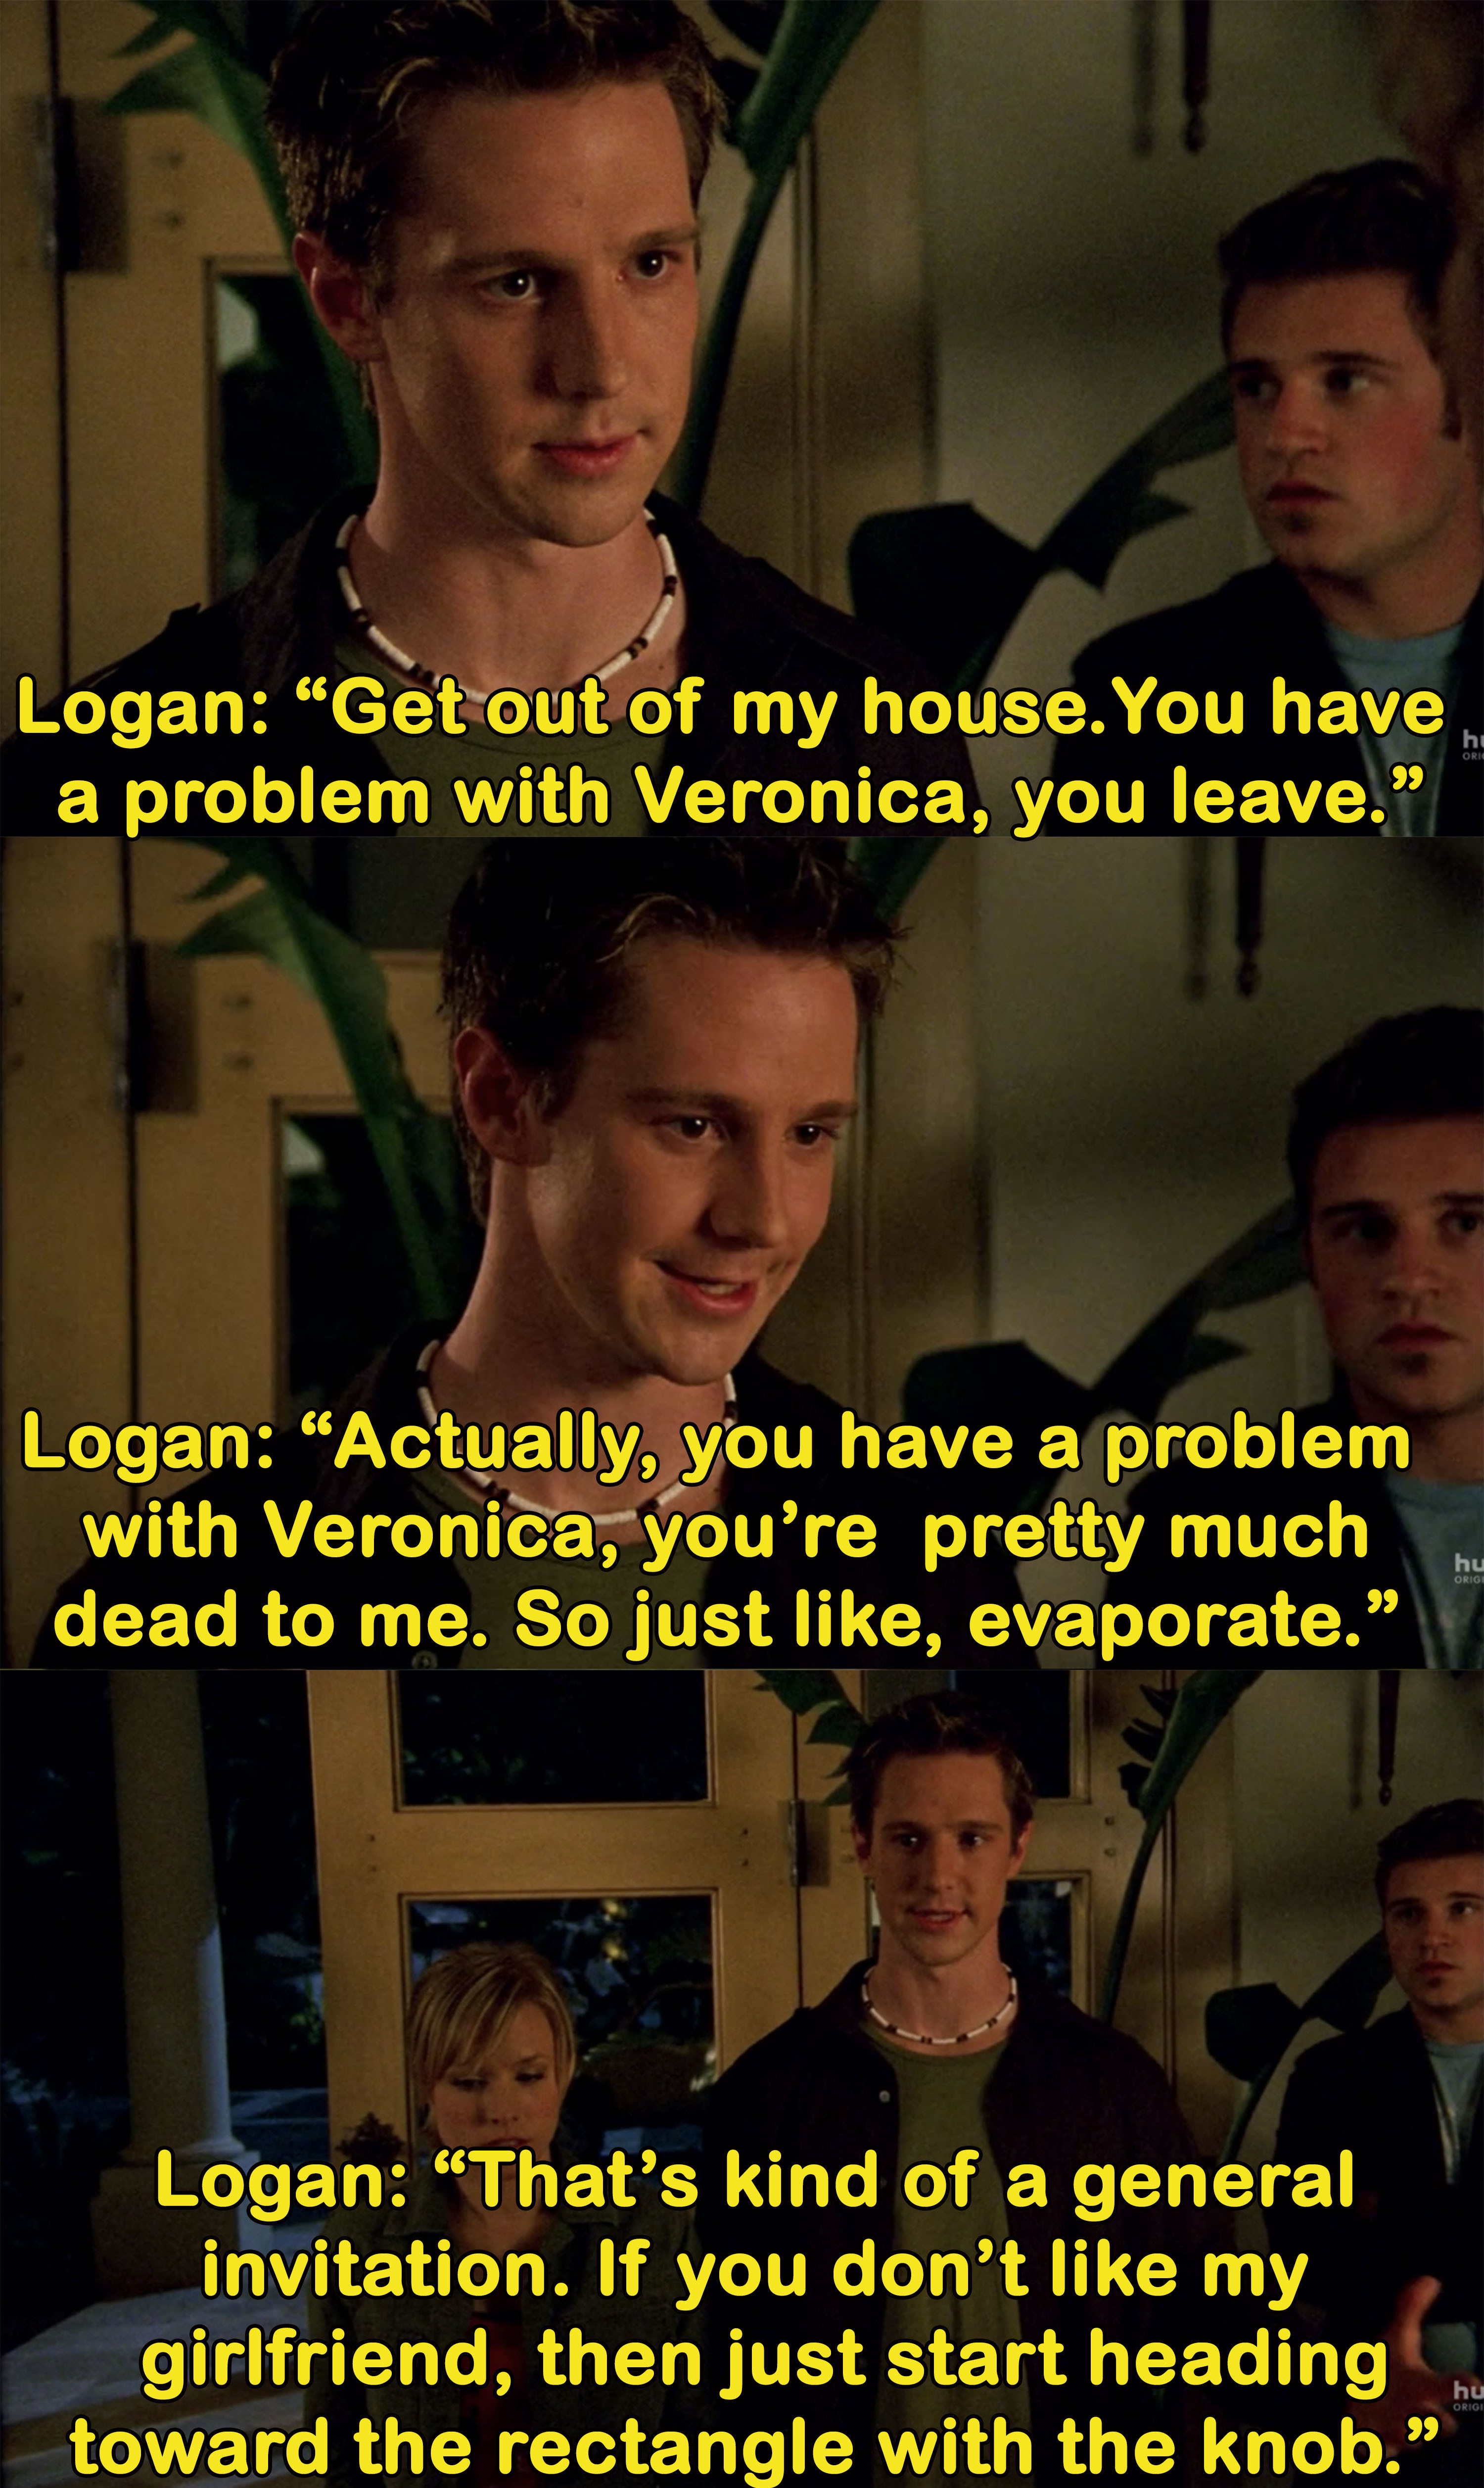 Logan says if anyone has a problem with Veronica, they're pretty much dead to him